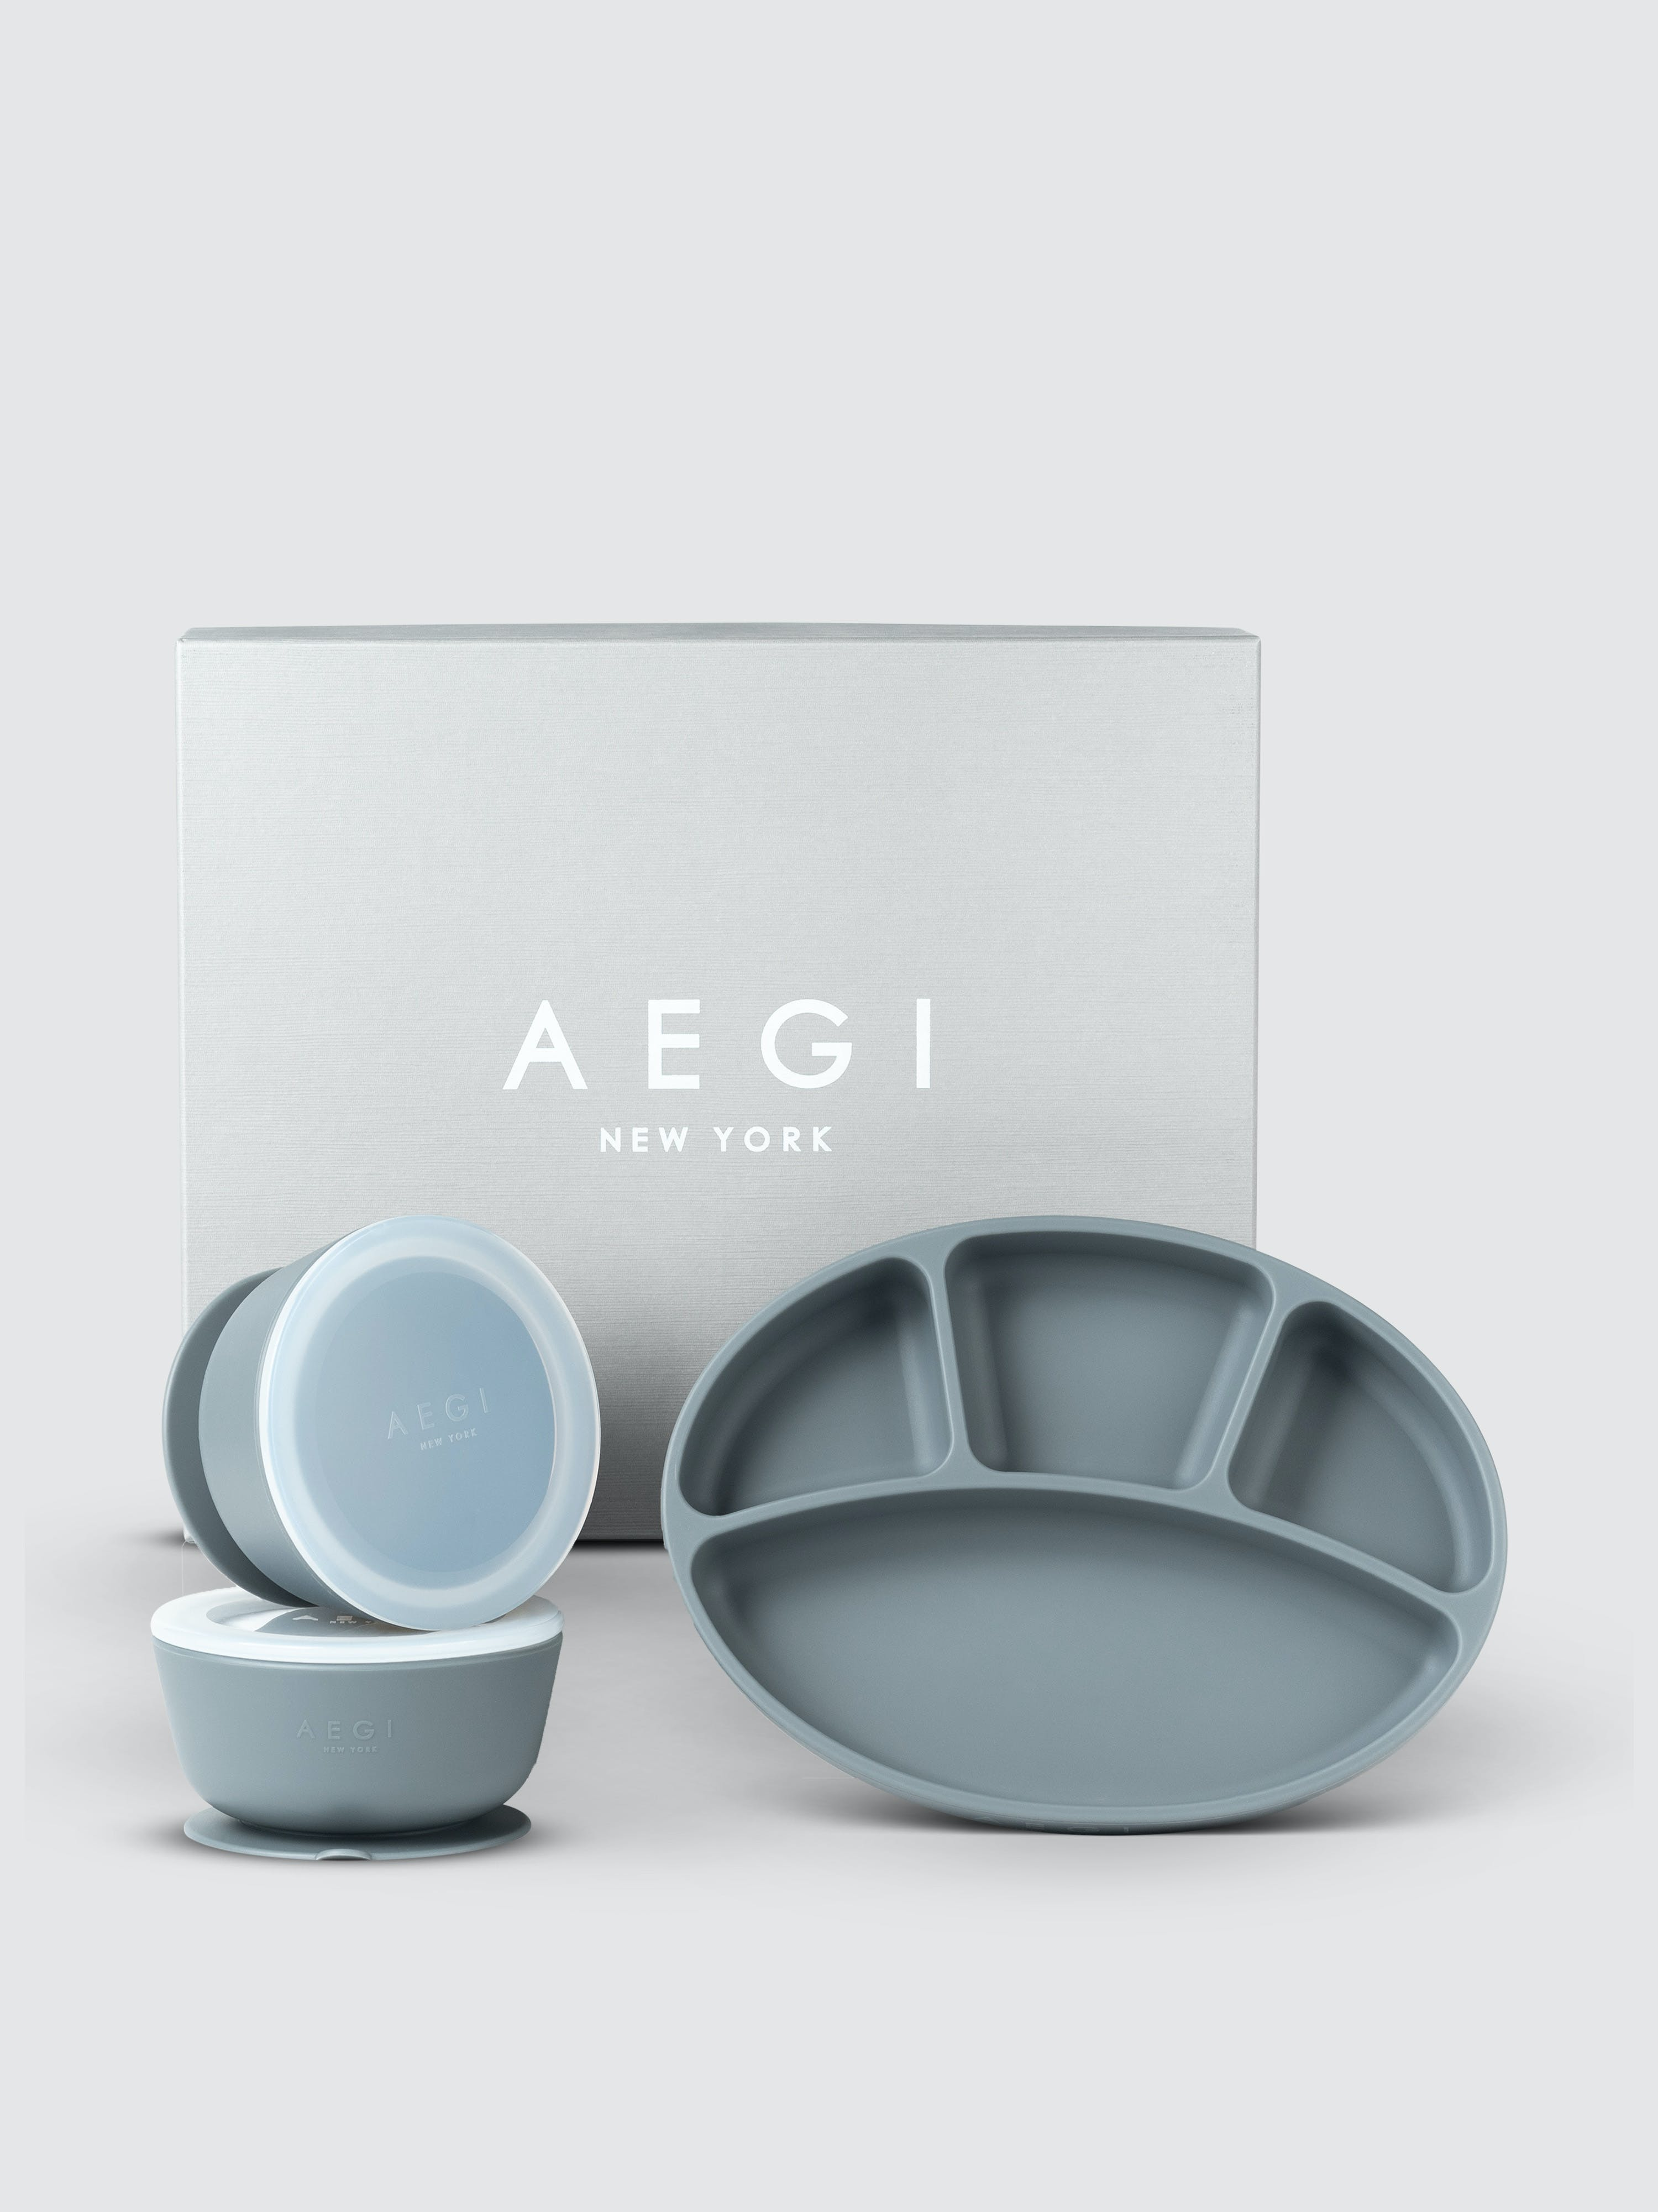 Aegi New York Silicone Suction Gift Set In Peppercorn